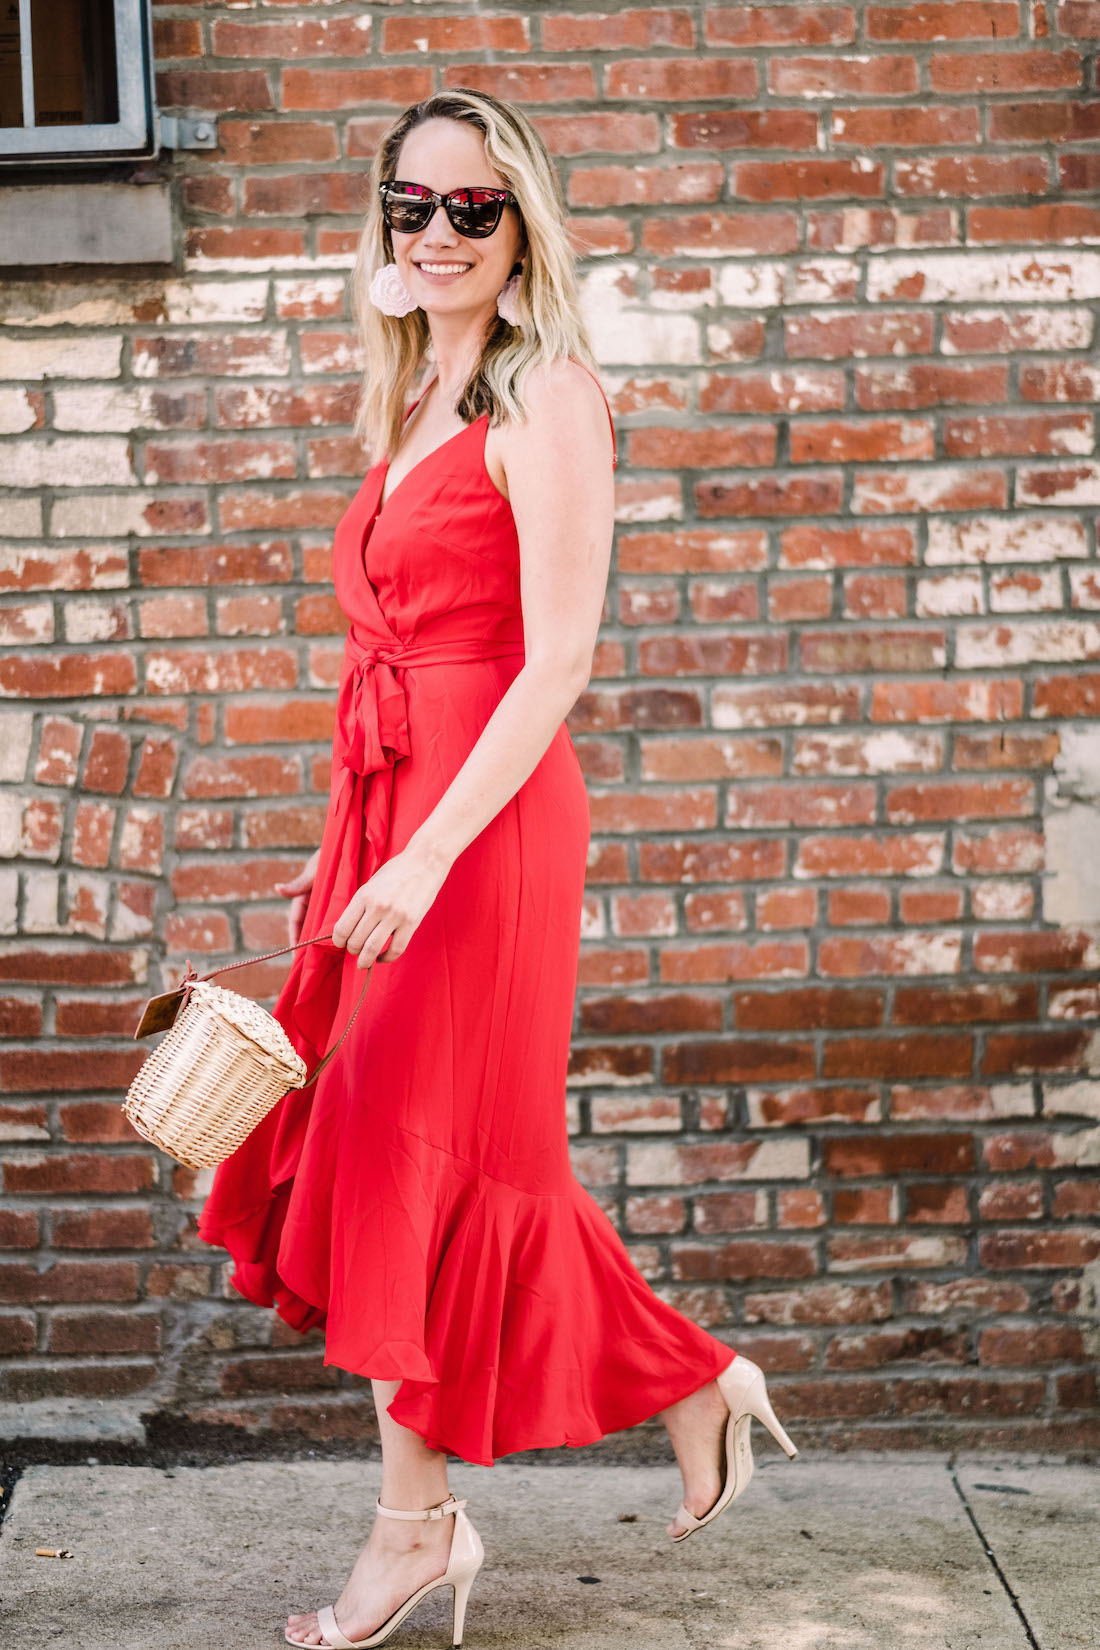 J.Crew Red Dress // BaubleBar Earrings // Steve Madden Sandals // Polaroid Sunglasses // Lindroth Design Mini Birkin - The Stripe